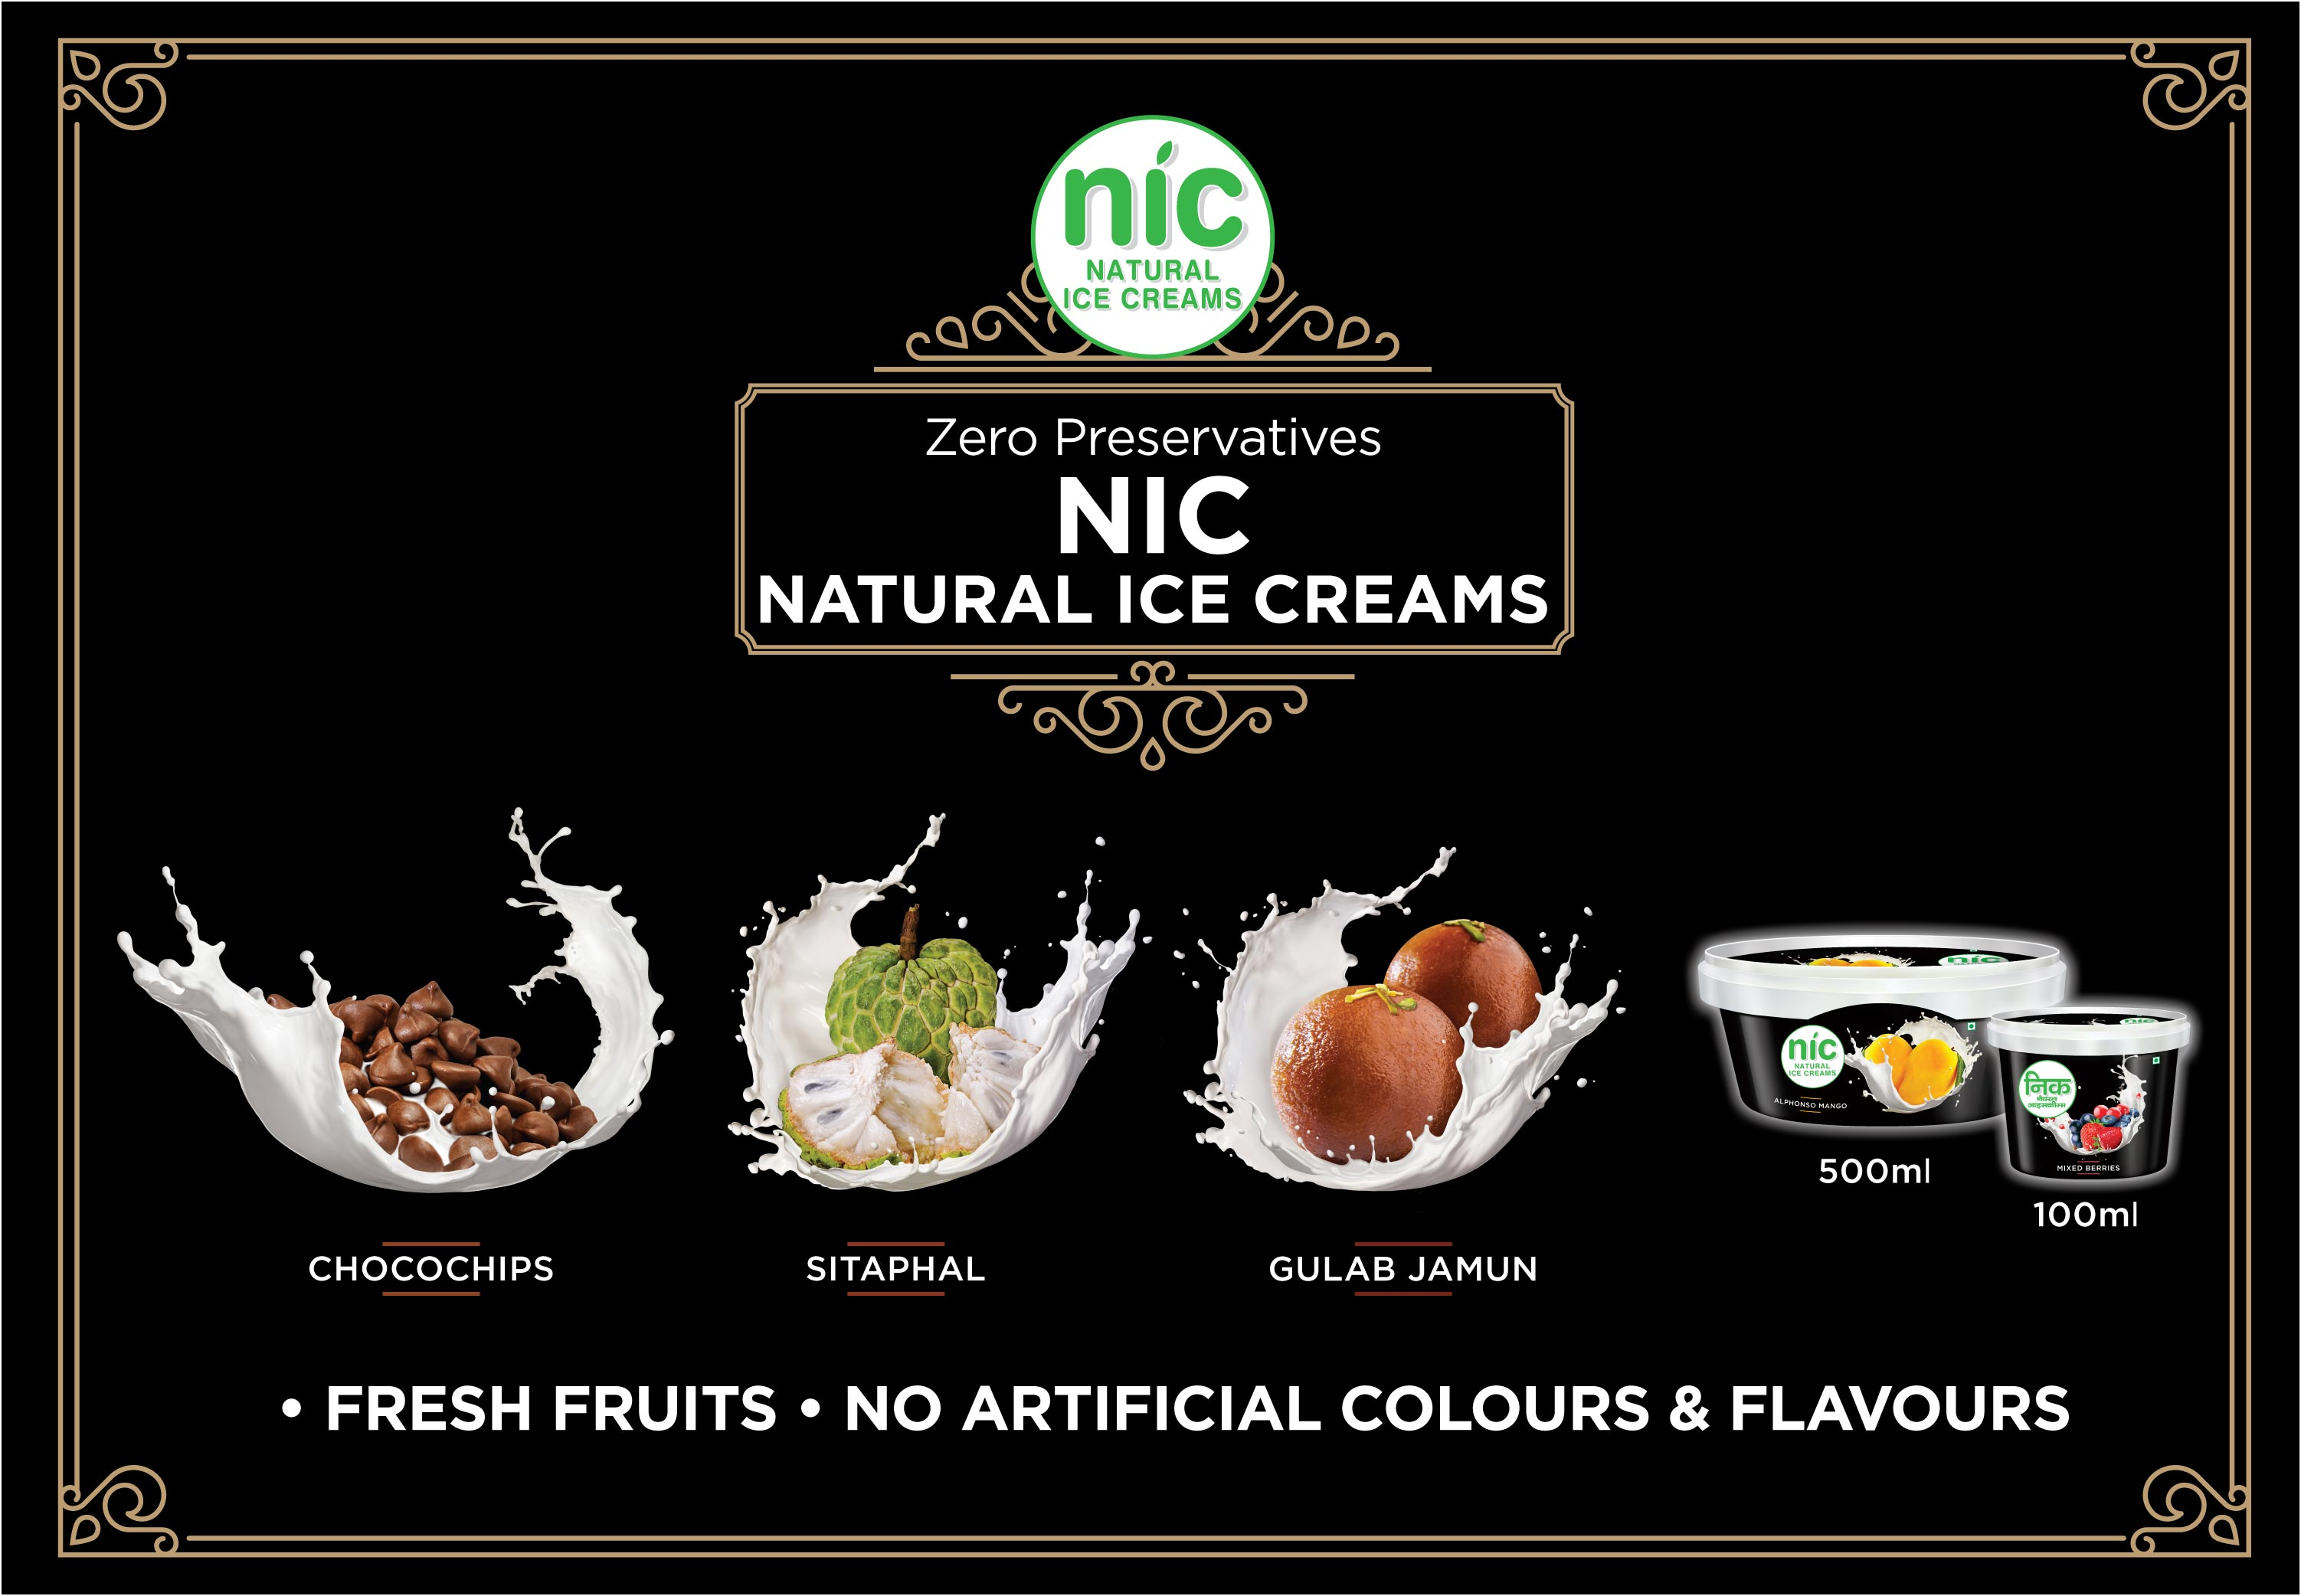 Nic Natural Ice creams as 100% natural